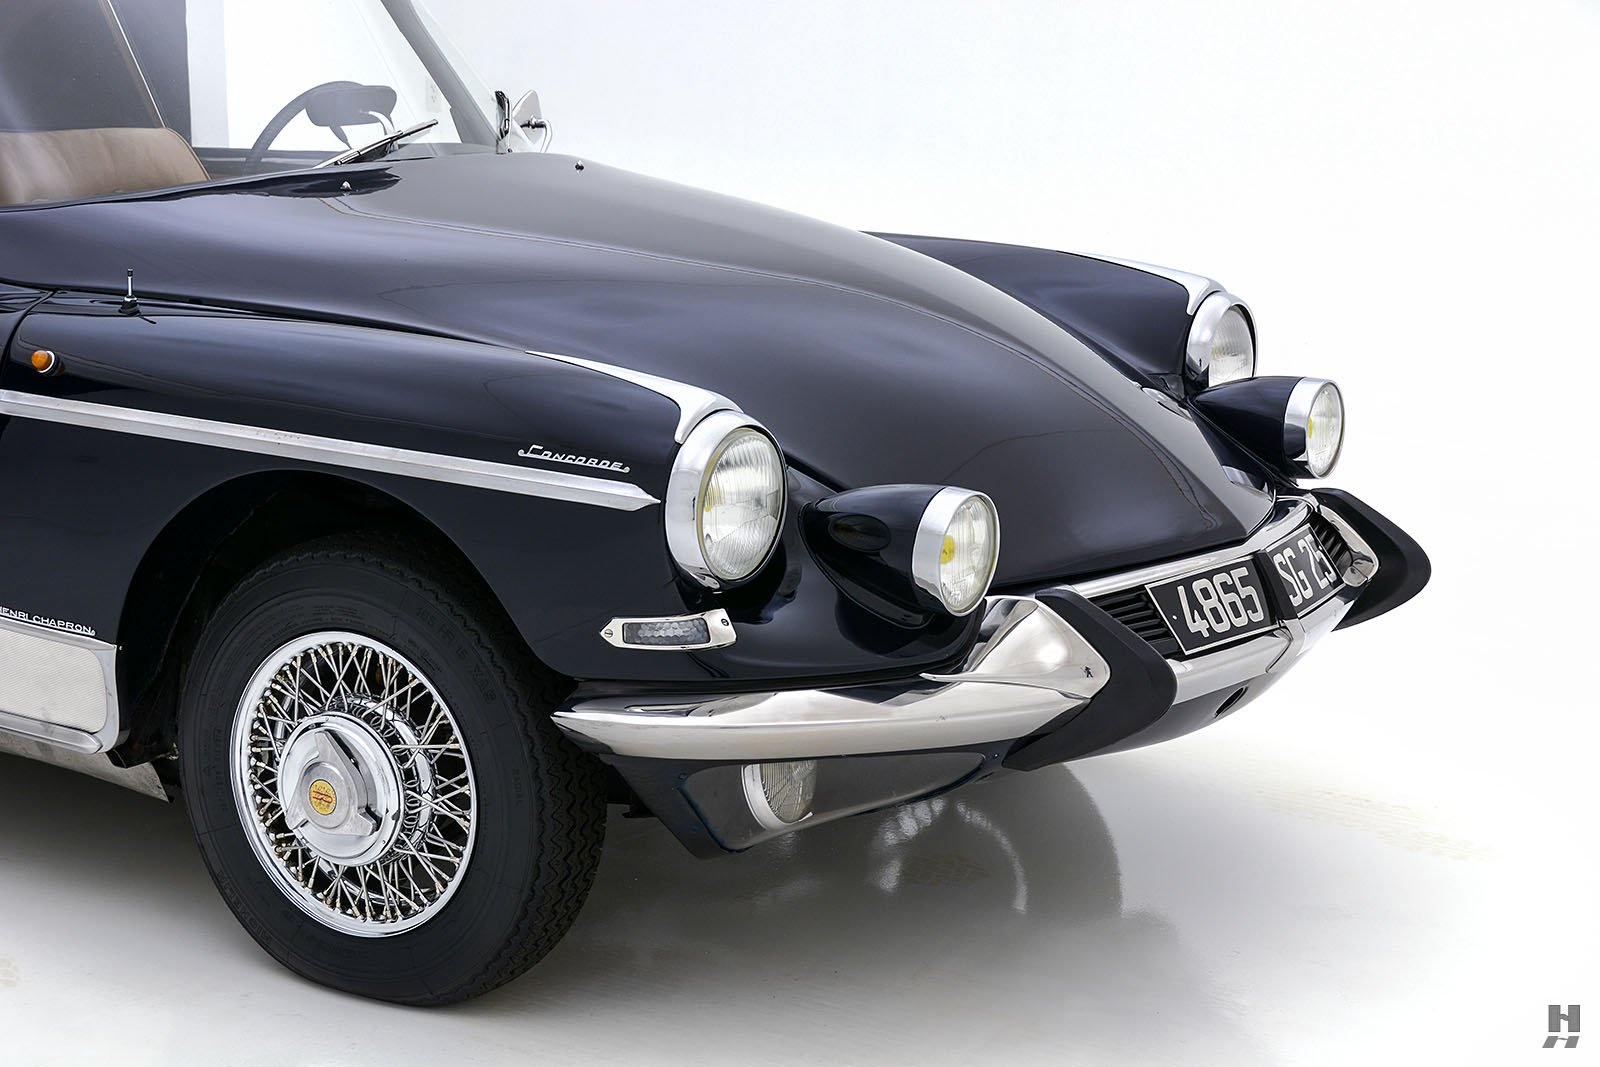 Citroen-DS21-Concorde-coupe-for-sale-21